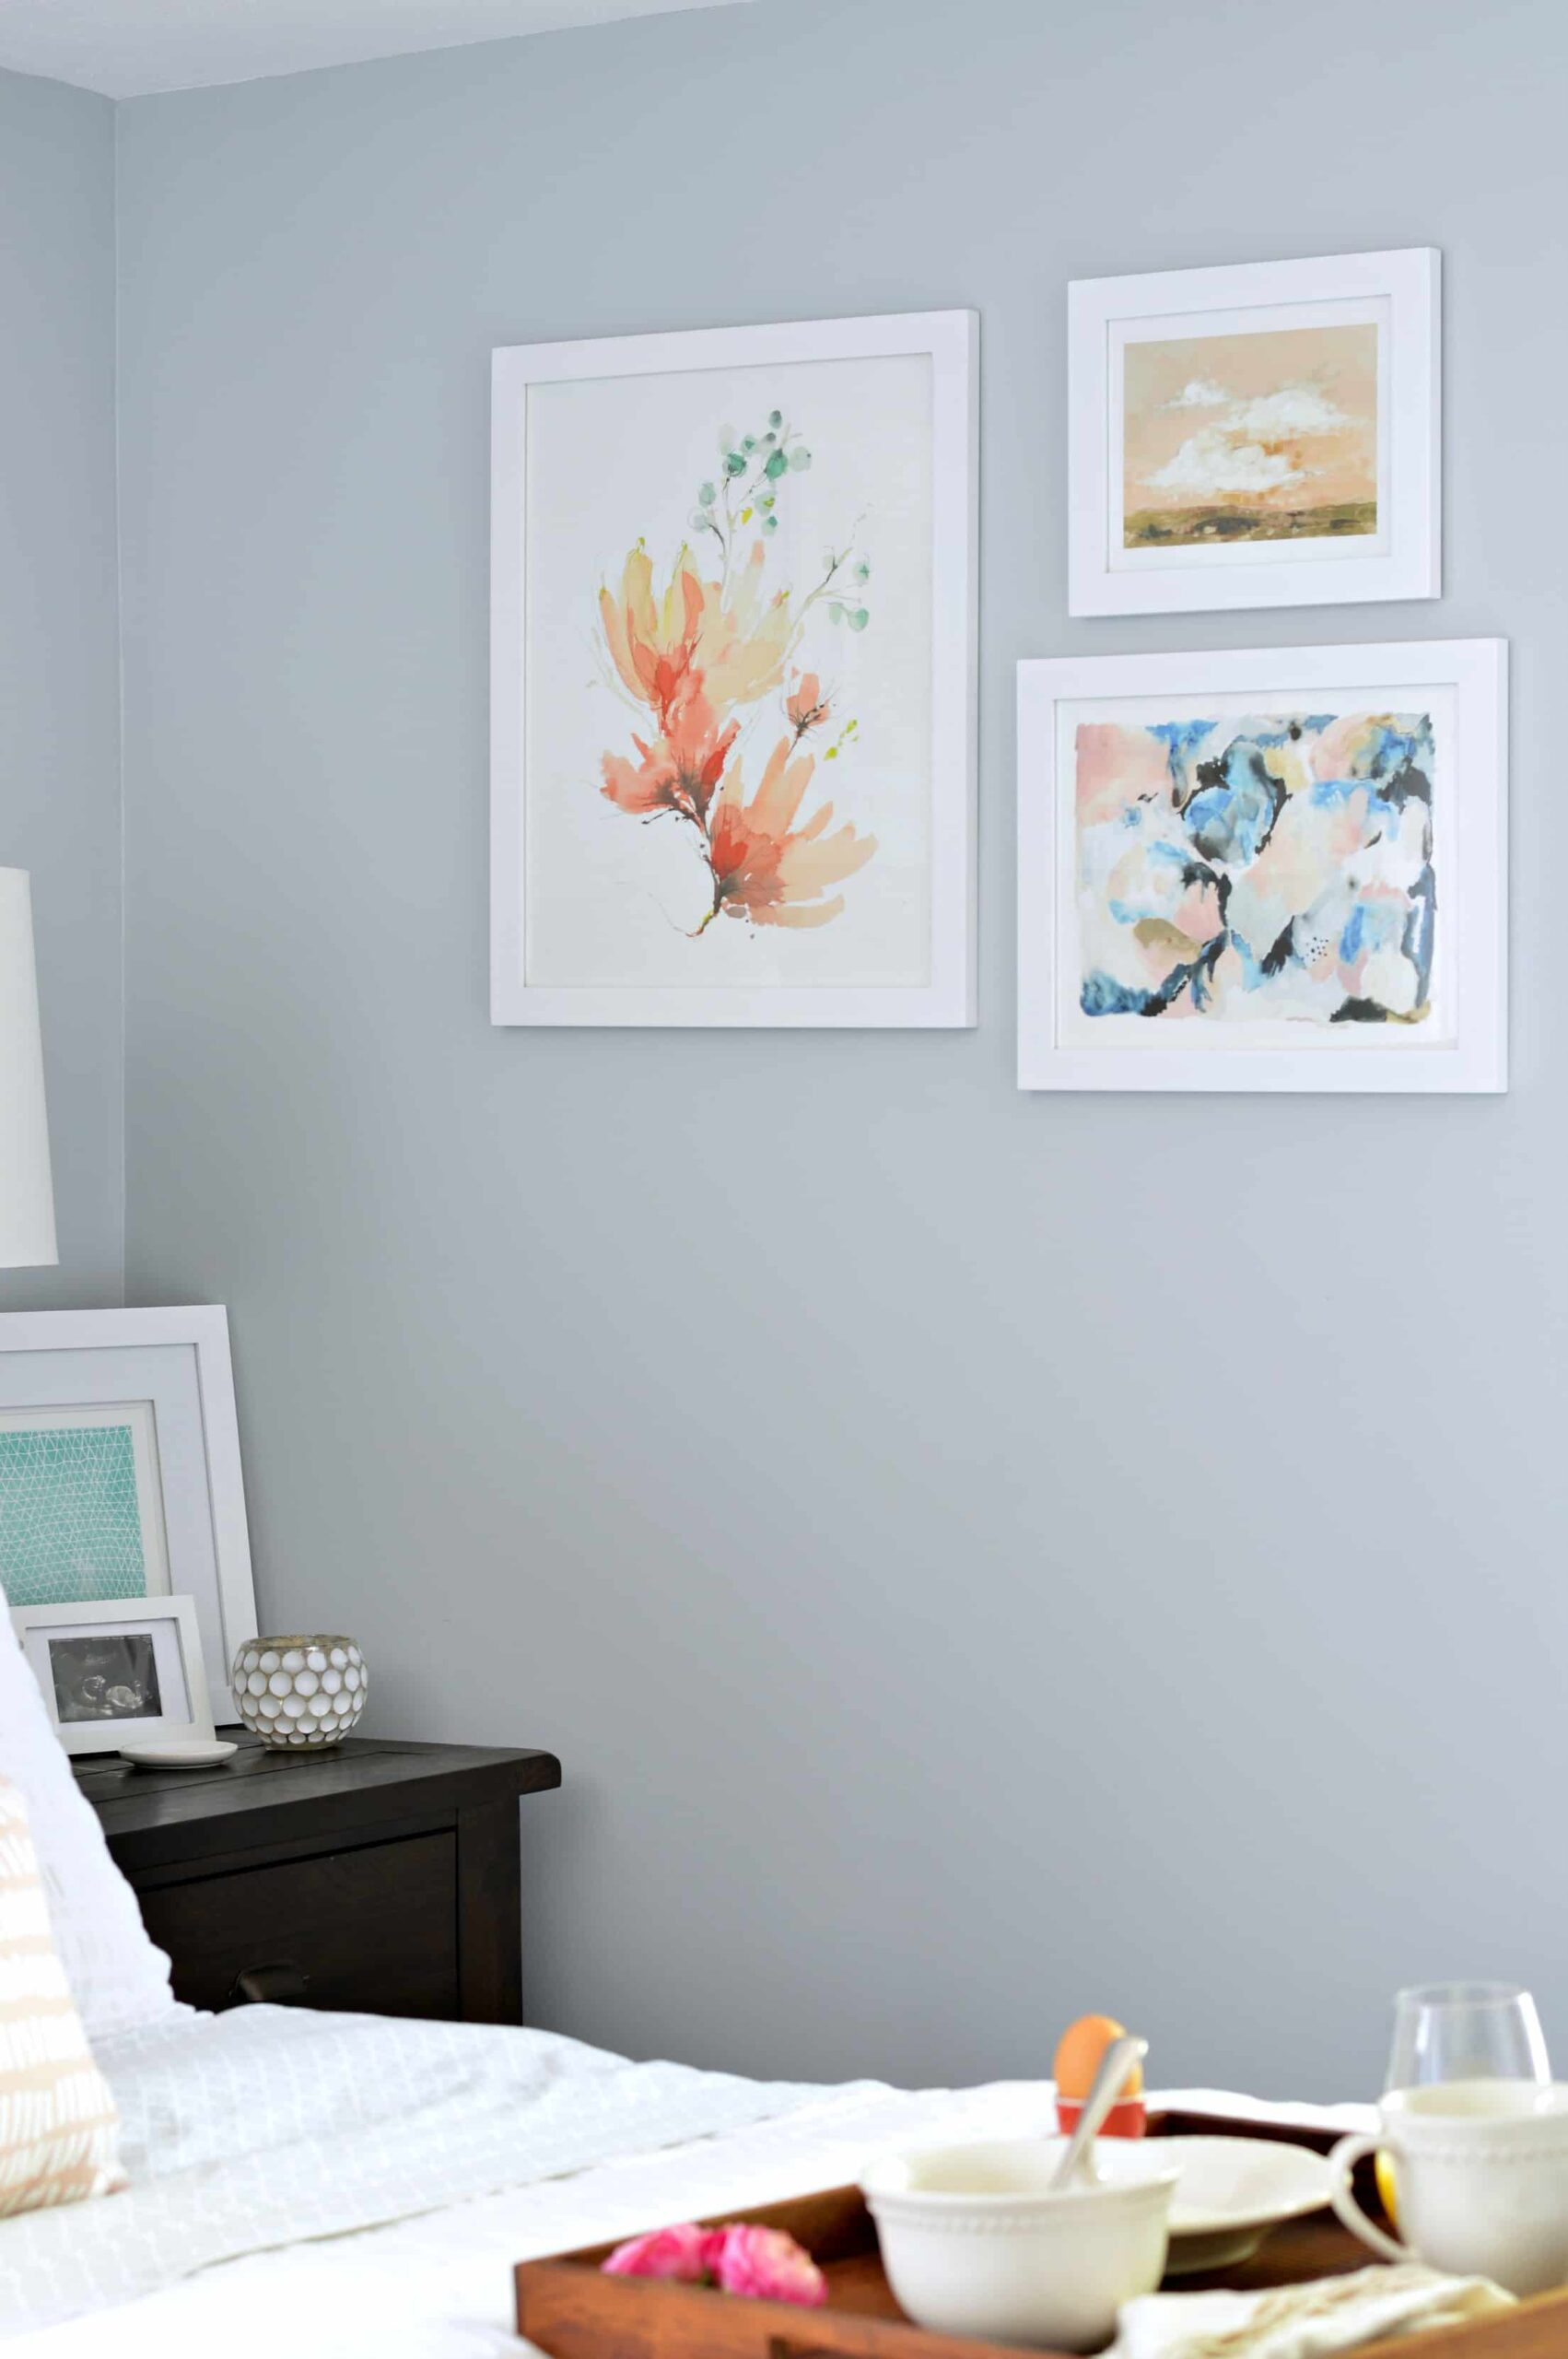 Best of Behr: Blue Gray Paint Colors - Image via Jenna Kate At Home, feat. wall paint color: 'Light French Gray' by Behr